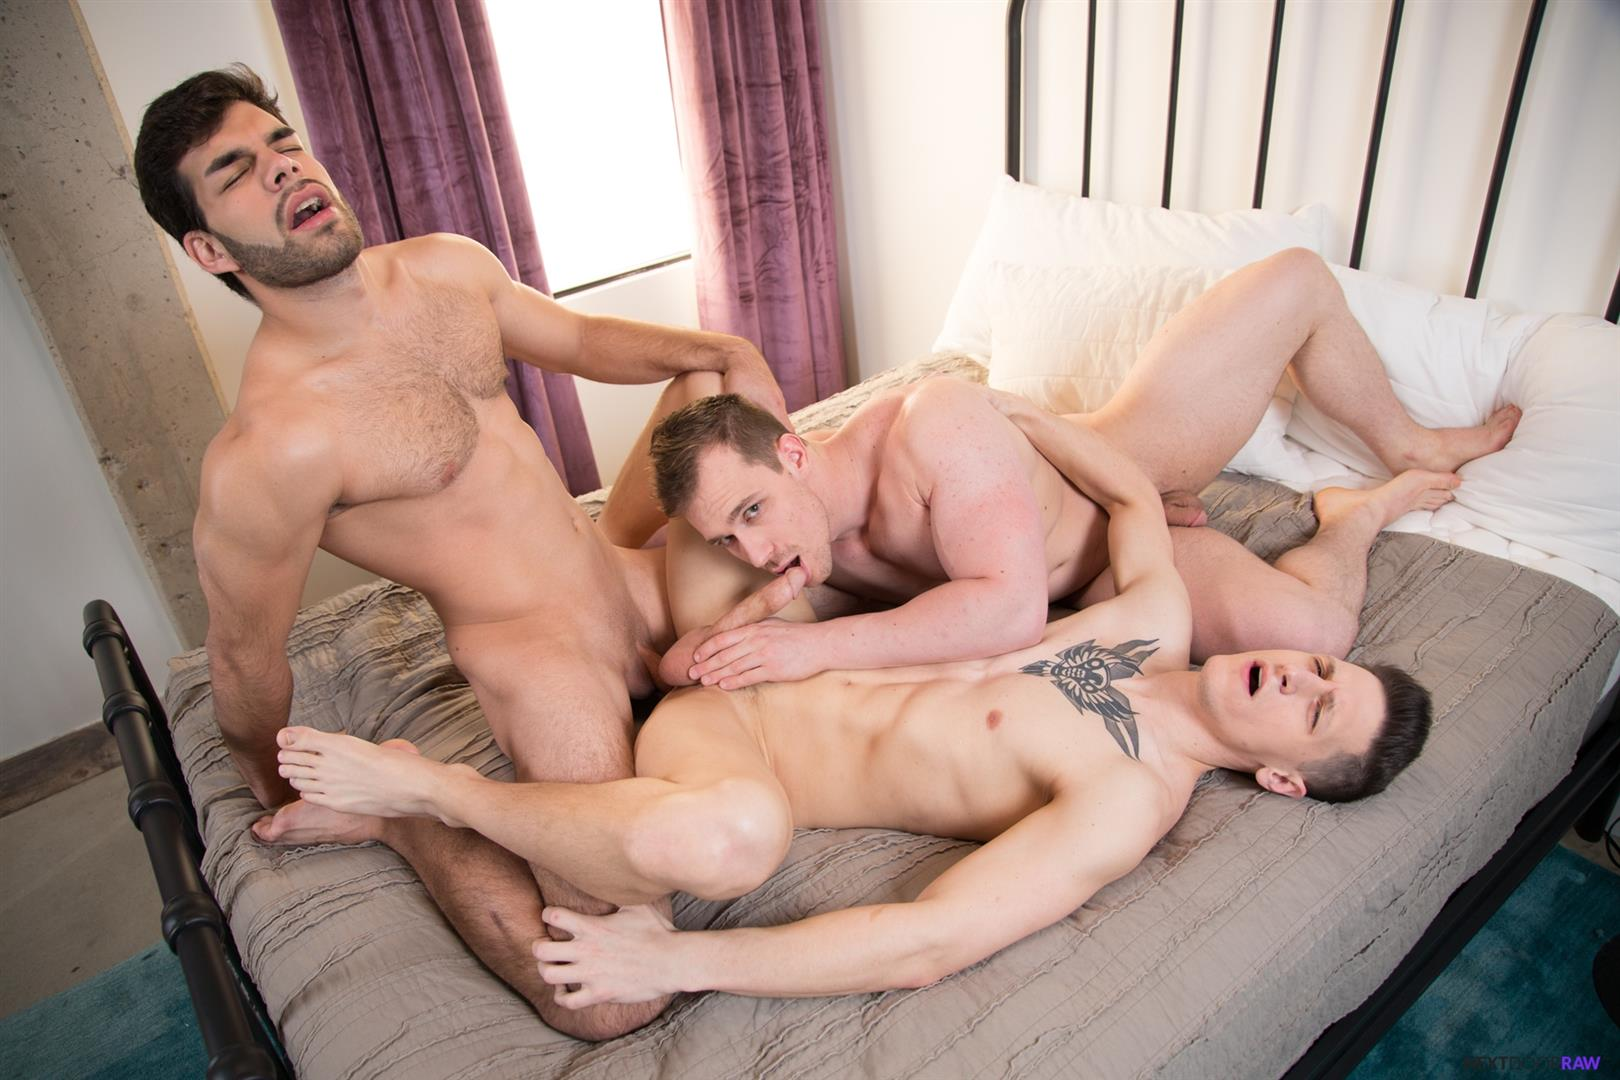 Next-Door-Raw-Dalton-Riley-and-Blake-Hunter-and-Zay-Hardy-Bareback-Threeway-07 Gay Boyfriends Invite A Trick Over For A Bareback Threeway